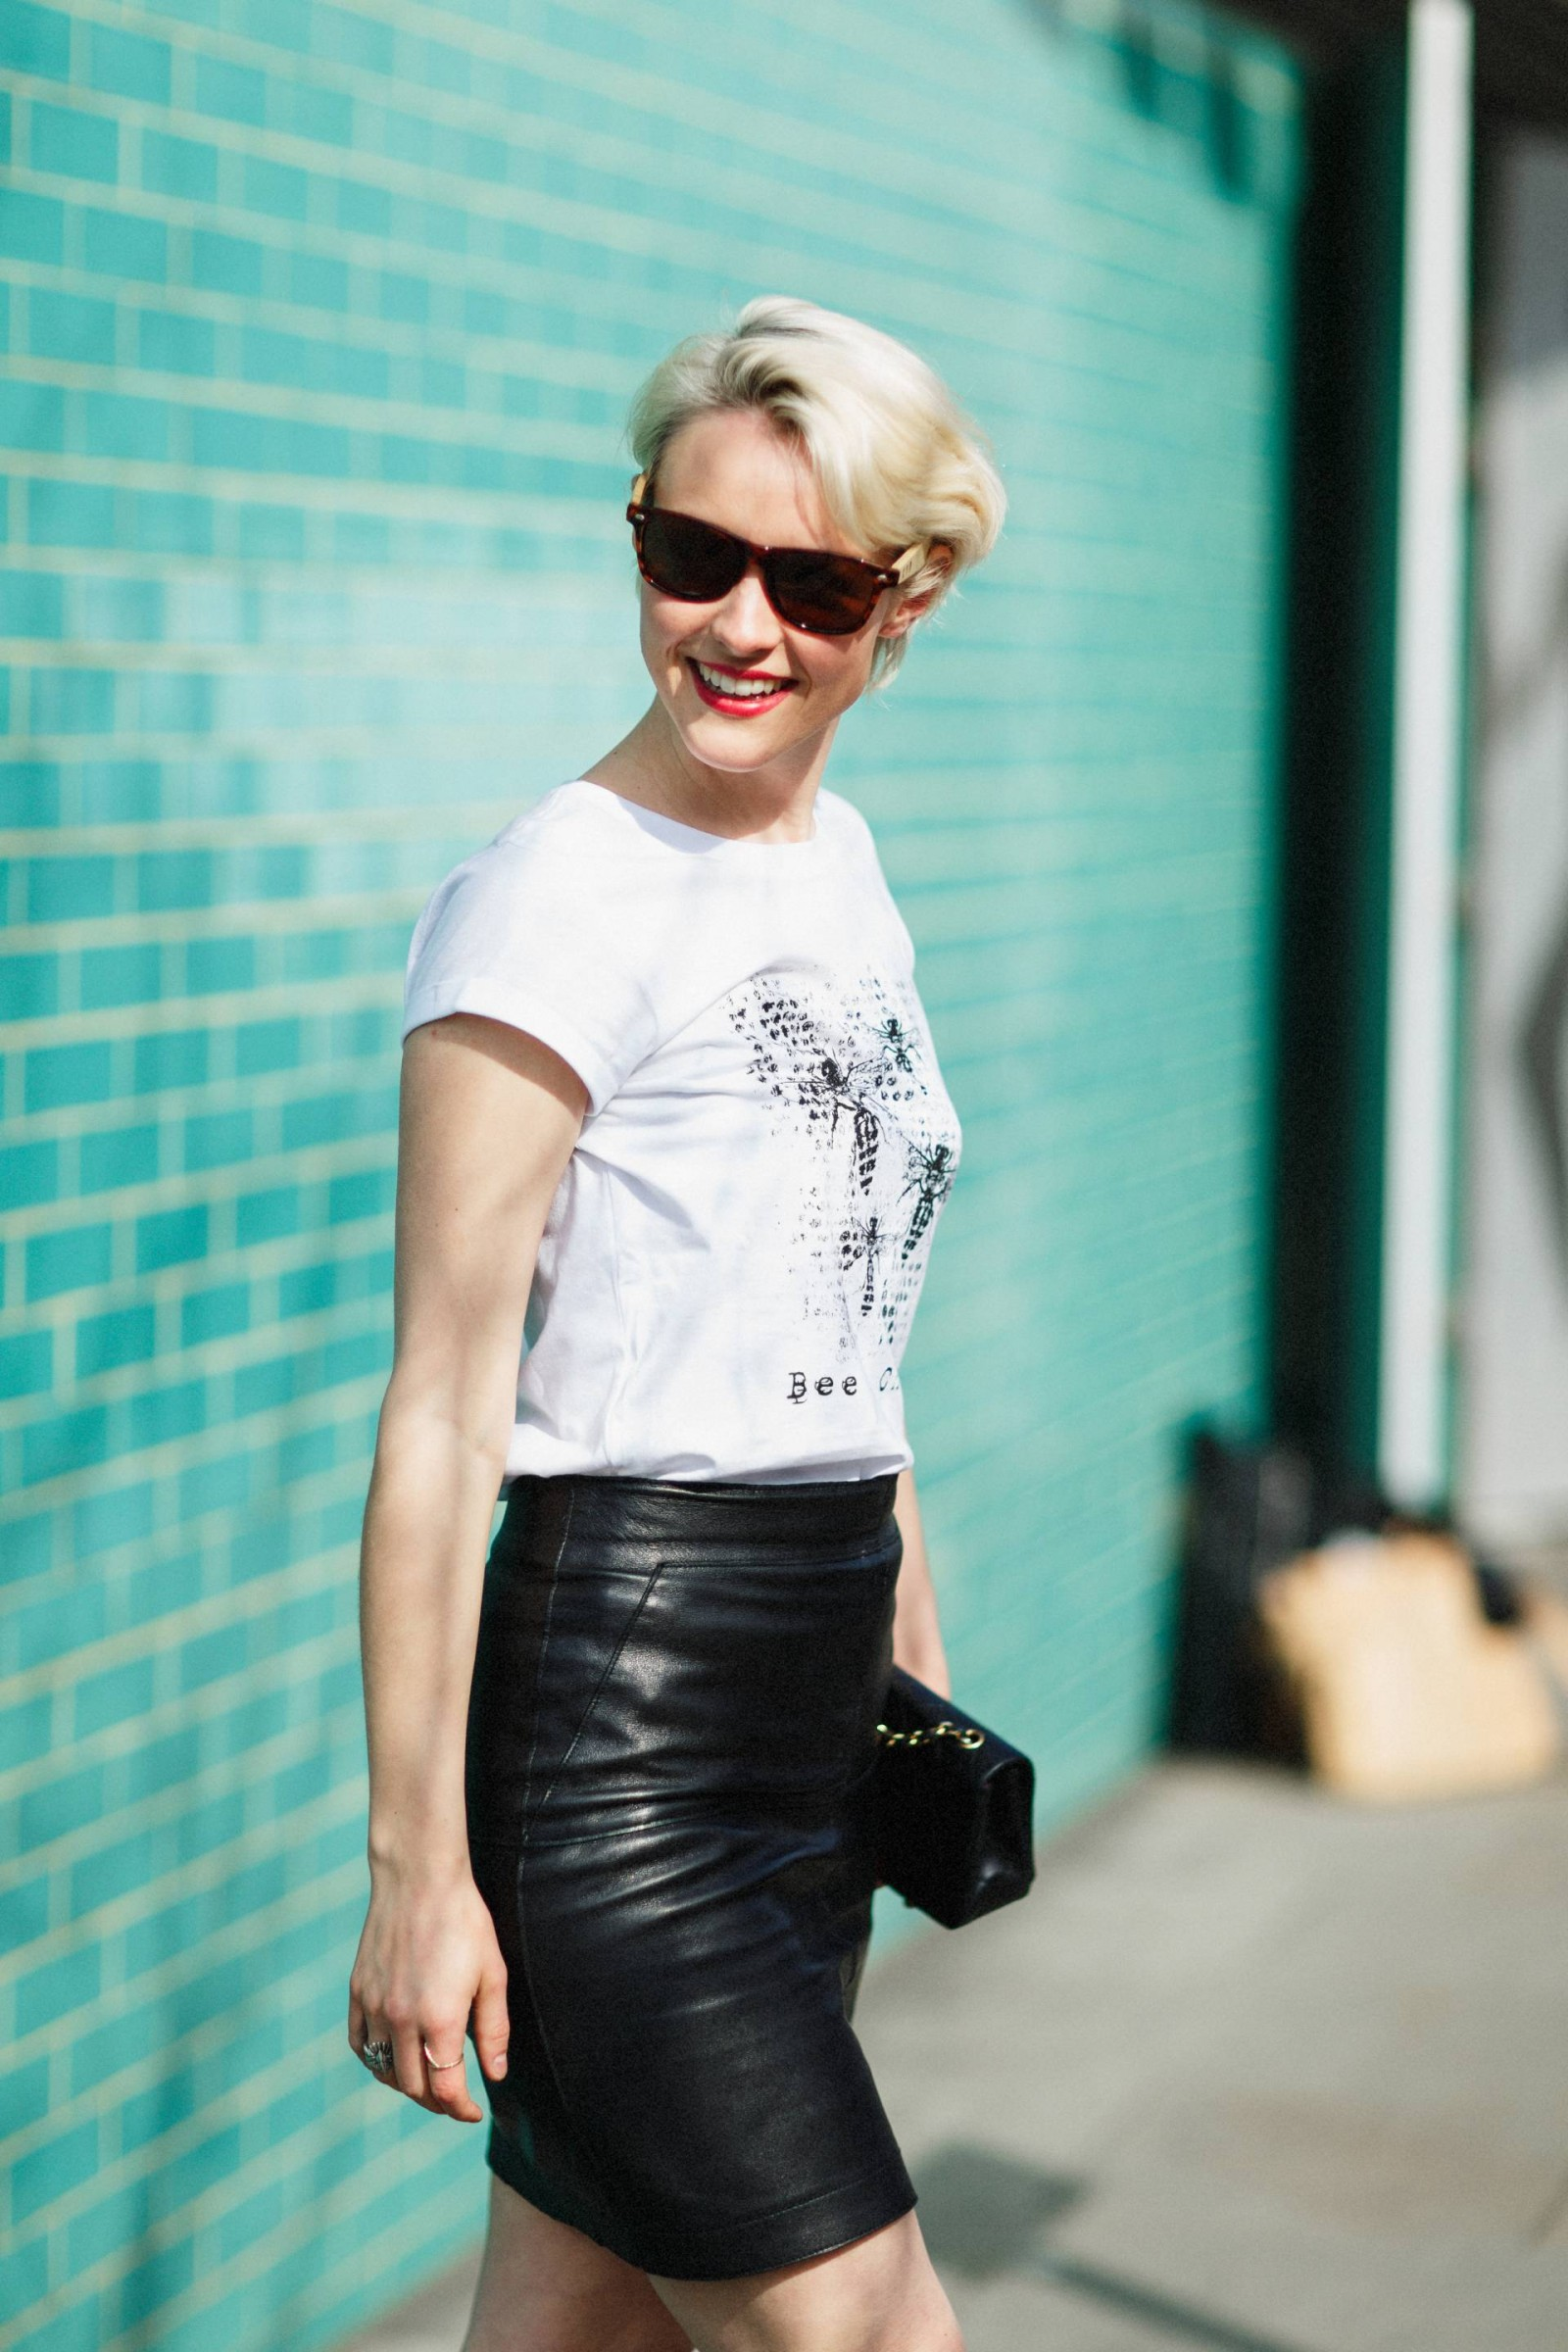 Kate Arnell in organic cotton tee by Deborah Campbell Atelier.